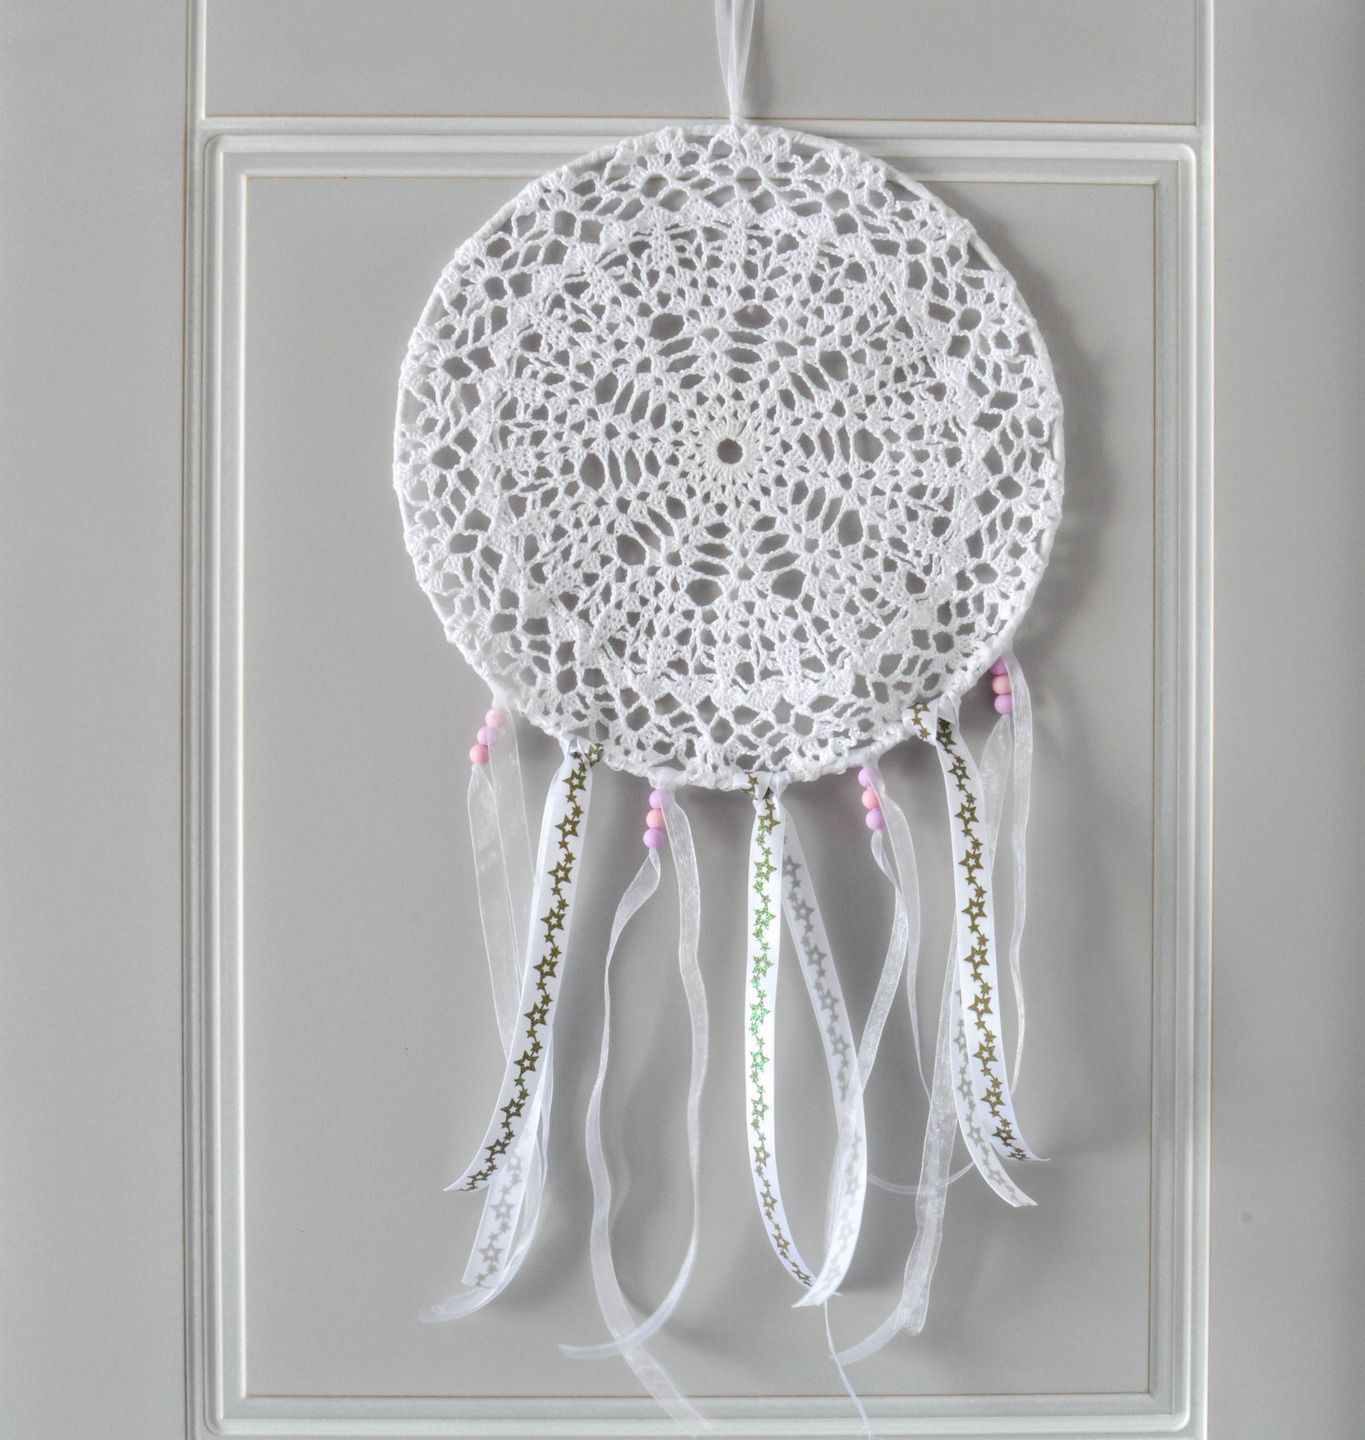 attrape r ves dreamcatcher capteur de r ve 25 cm de diam tre napperon au crochet chambre d. Black Bedroom Furniture Sets. Home Design Ideas